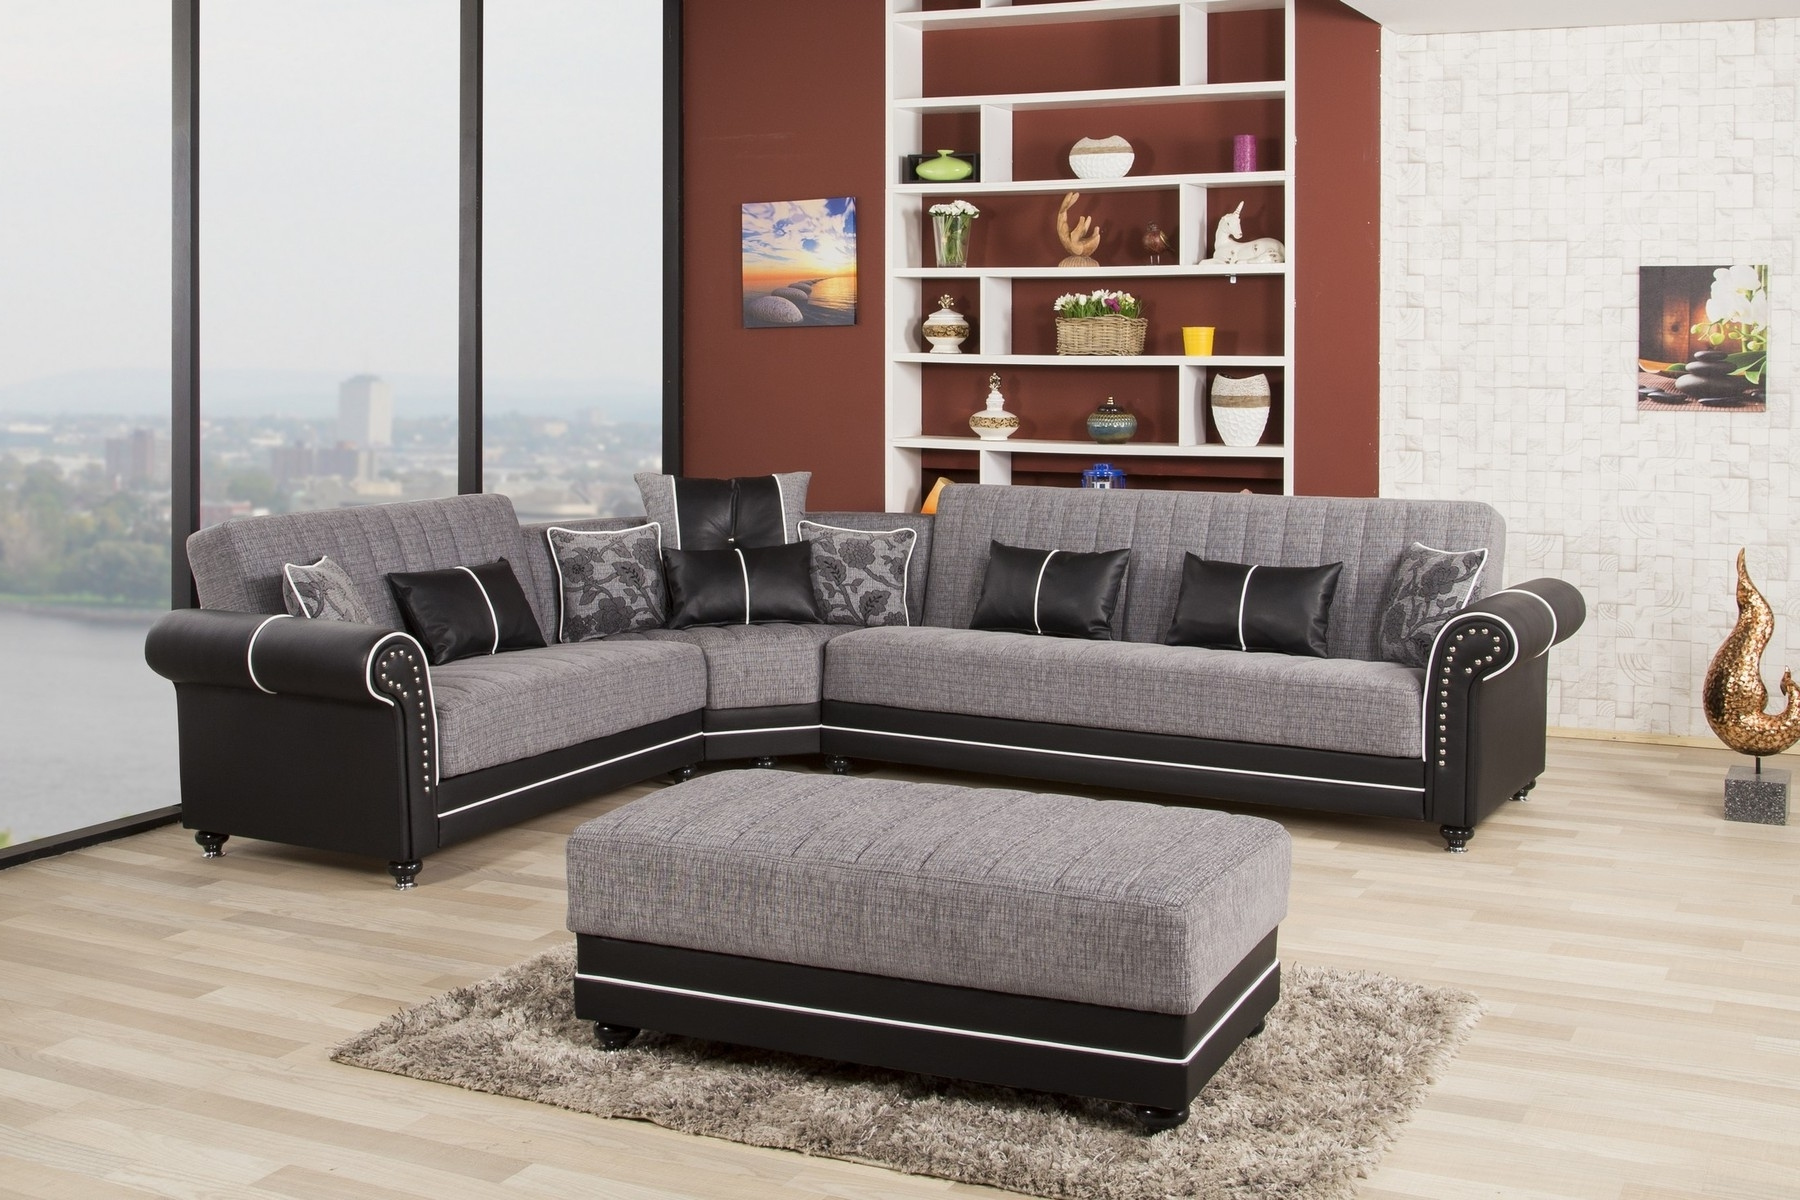 Latest Royal Furniture Sectional Sofas With Royal Home Gray Sectional Sofa Royalhome Casamode Furniture (View 9 of 20)